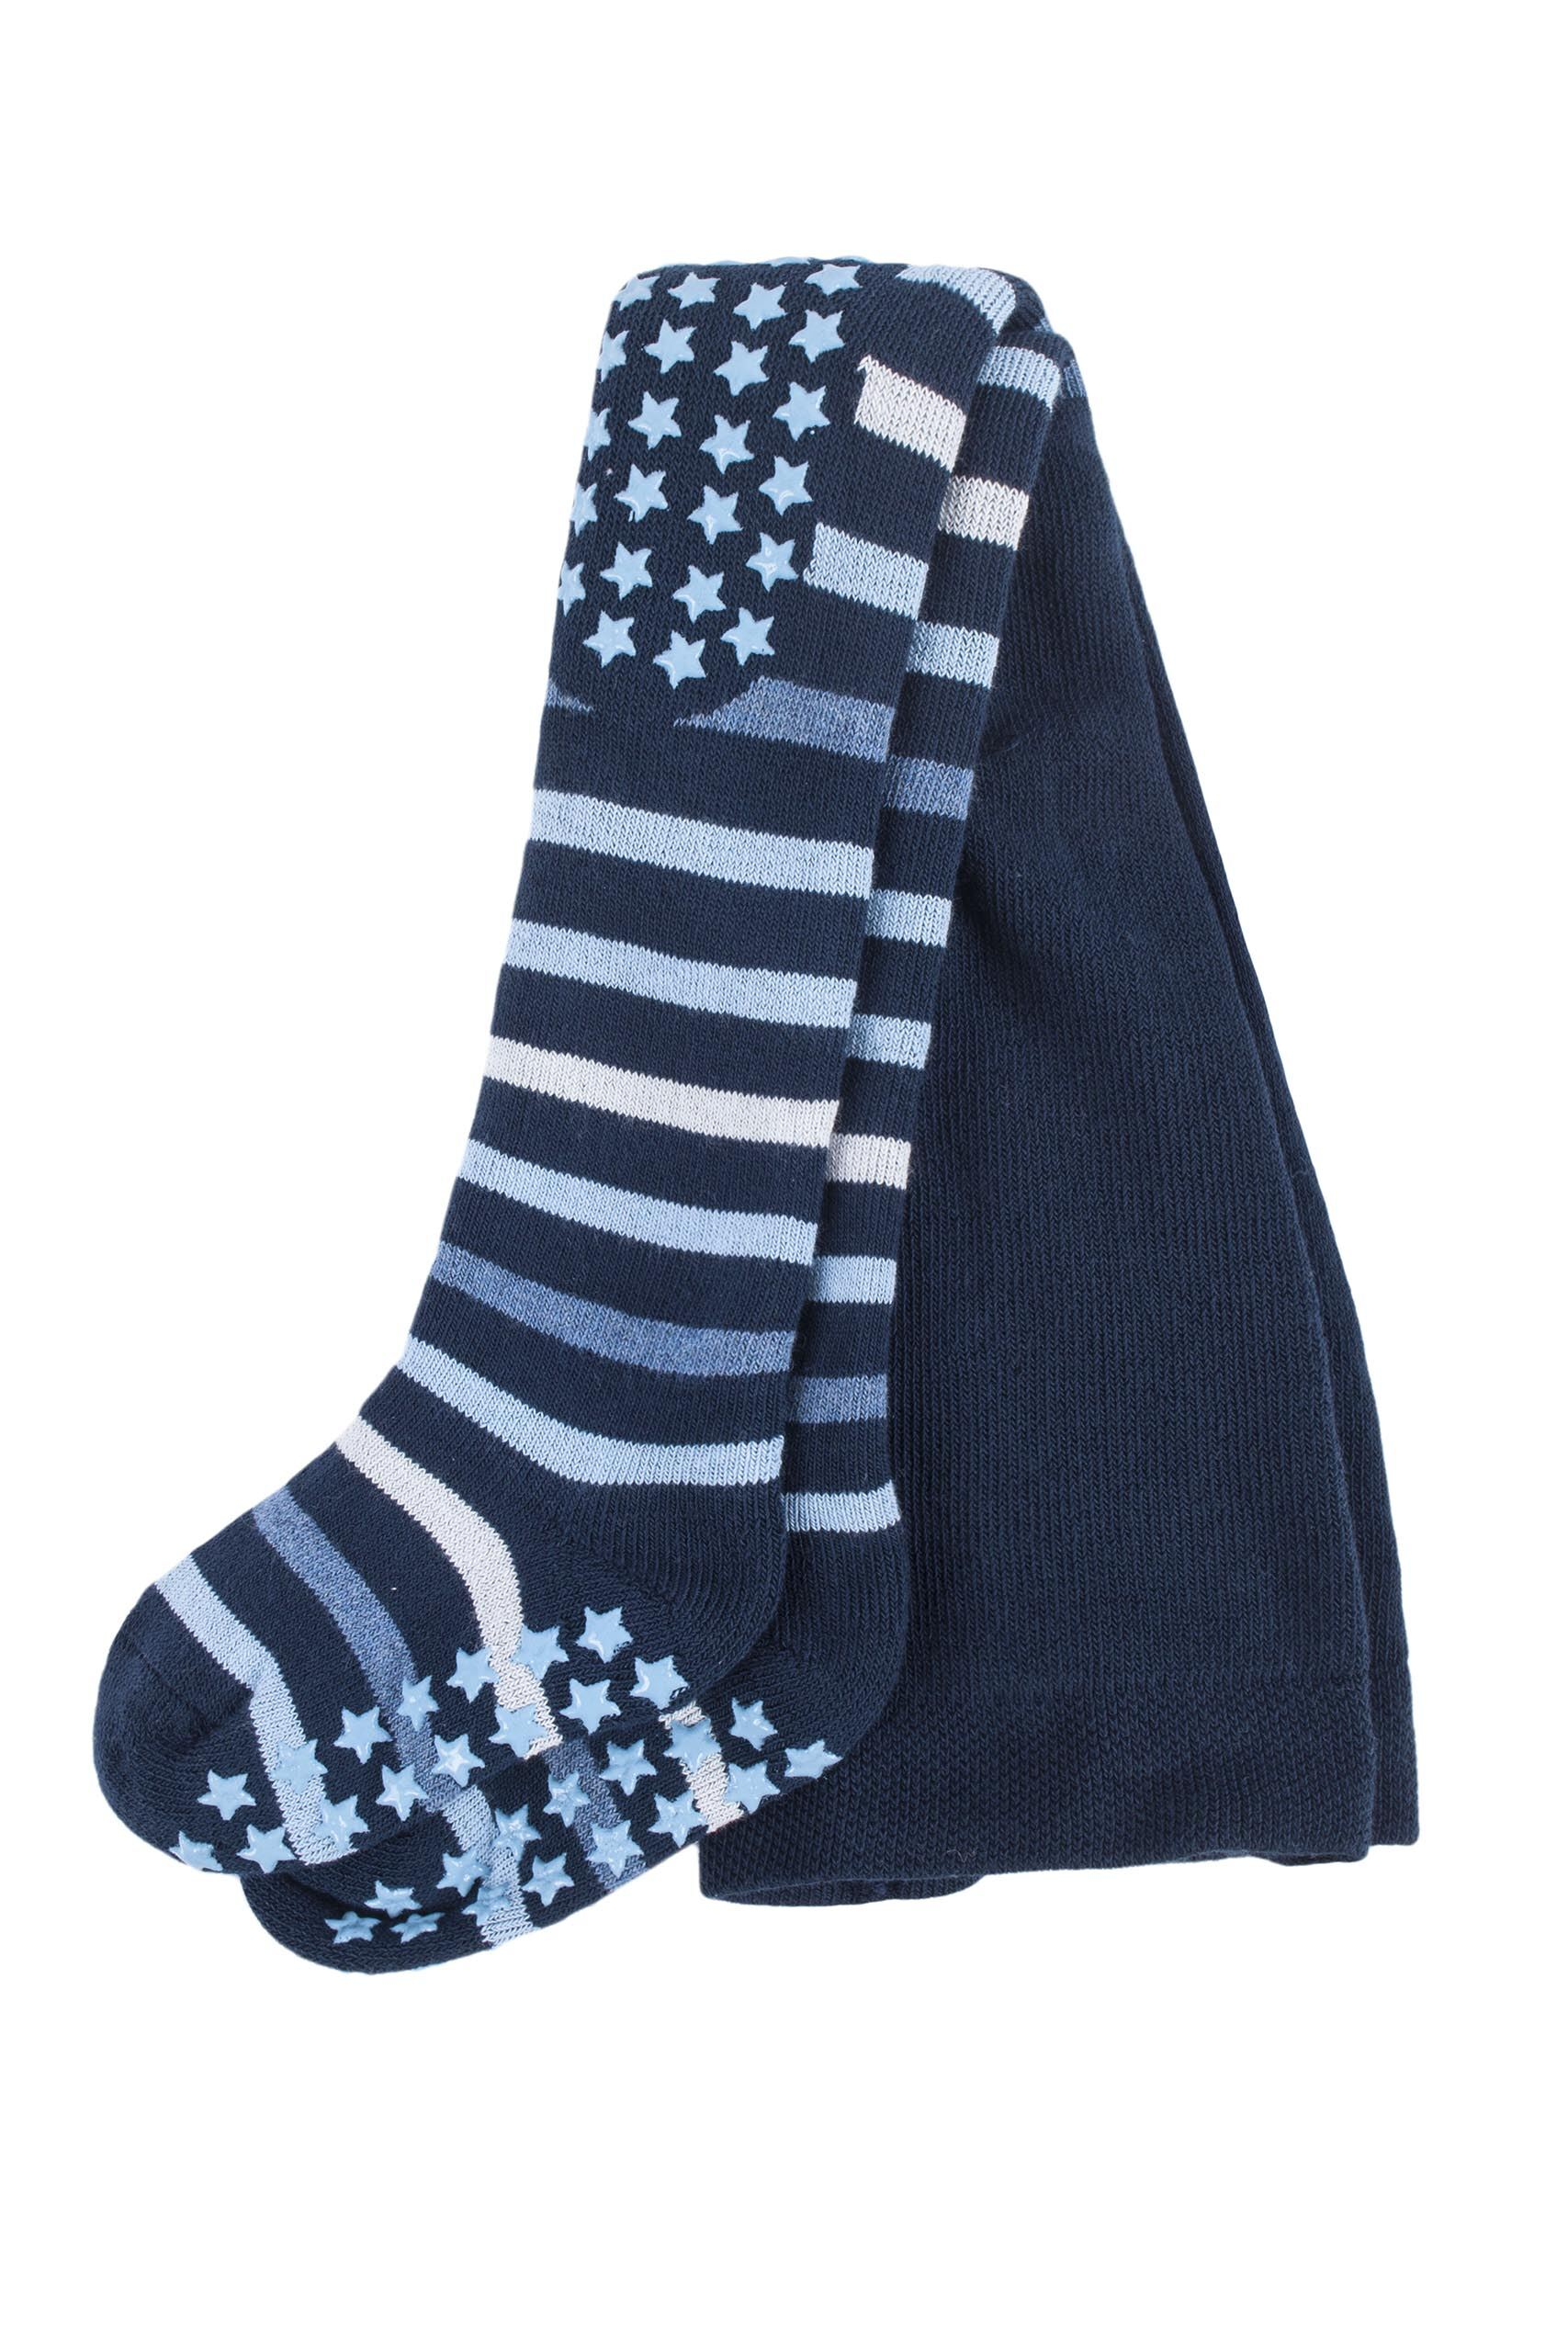 Image of 1 Pack Navy Multi Stripe Tights with Grips Kids Unisex 1-6 Months - Falke